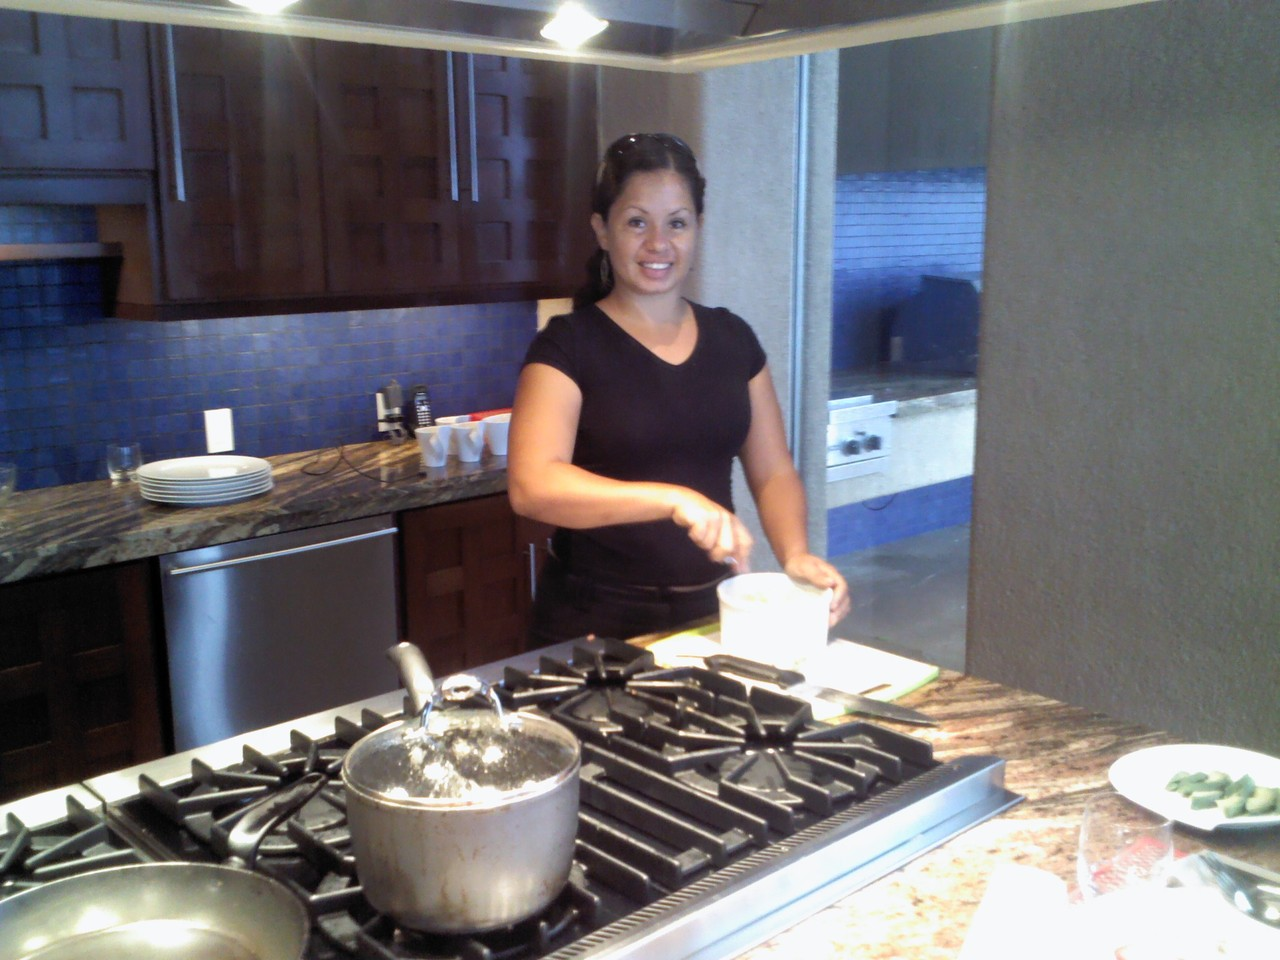 this is Chef Dulce Maria, CaboChefServices